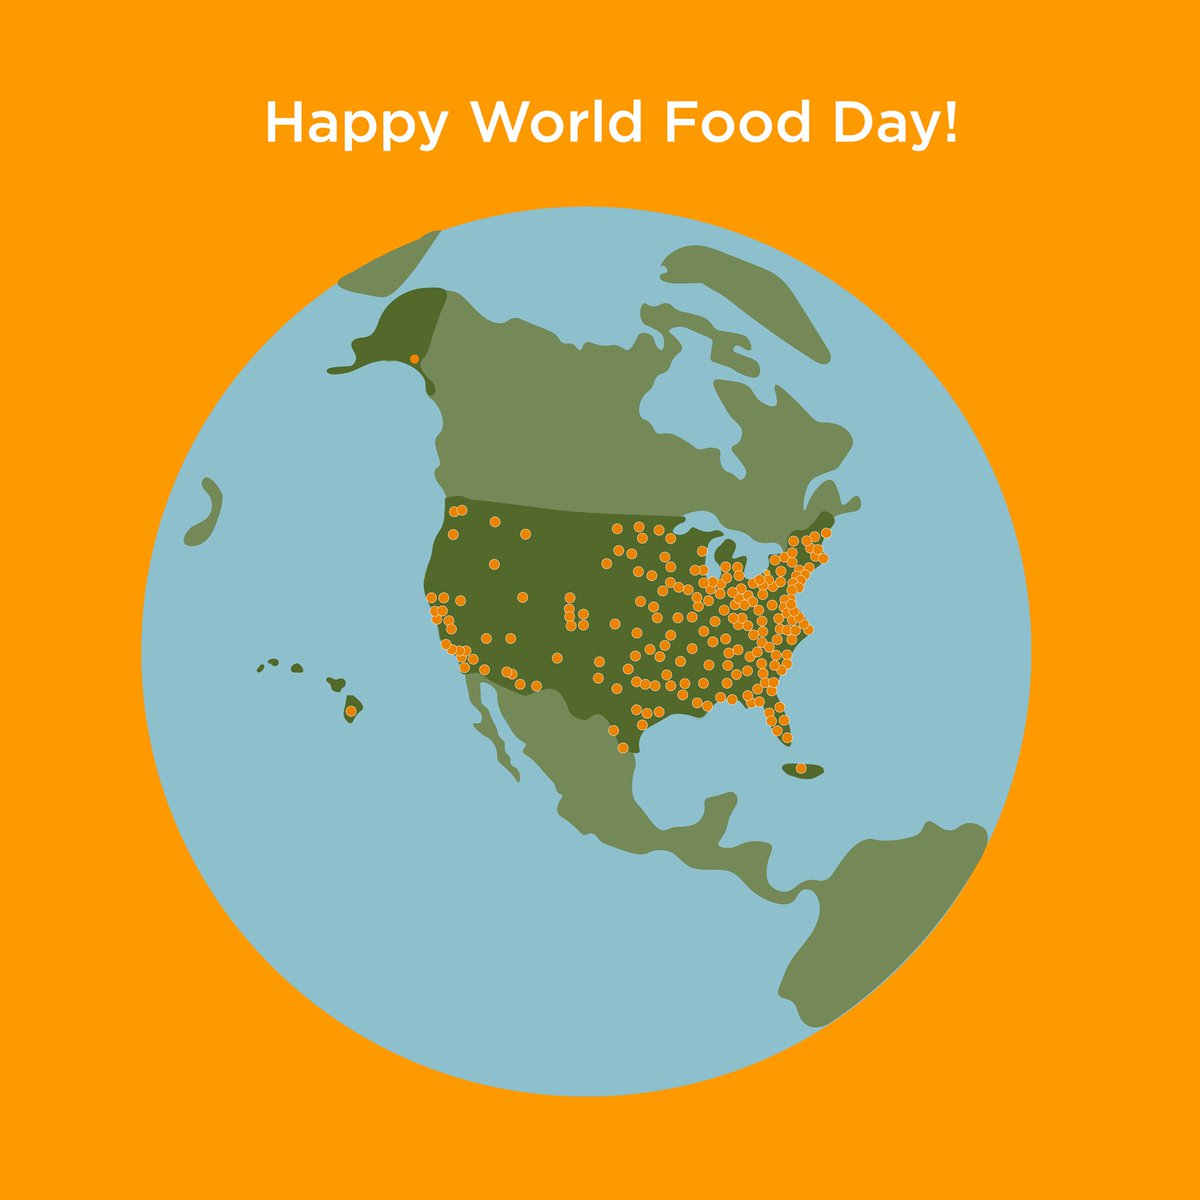 It's #WorldFoodDay! Today we celebrate the food banks across the country who share the gift of food with our neighbors every day. https://t.co/7aD23uG1k7